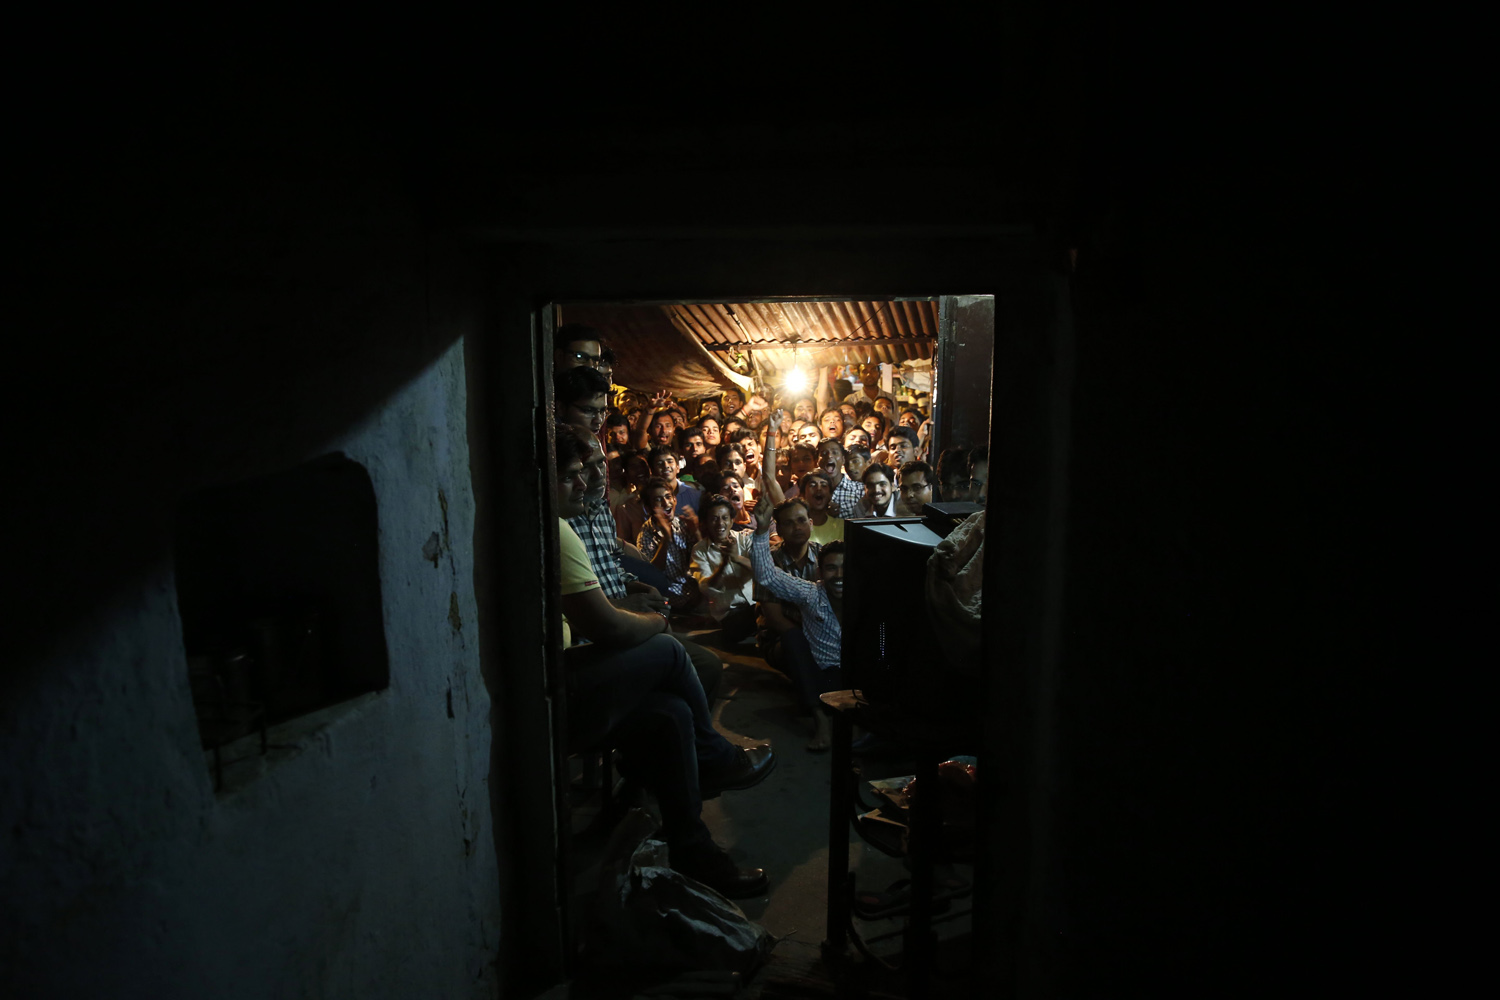 Apr. 6, 2014. Indian cricket fans celebrate as Virat Kohli plays a shot  in the ICC Twenty20 Cricket World Cup final match between India and Sri Lanka while watching on a television set at a roadside shop in Allahabad, India.